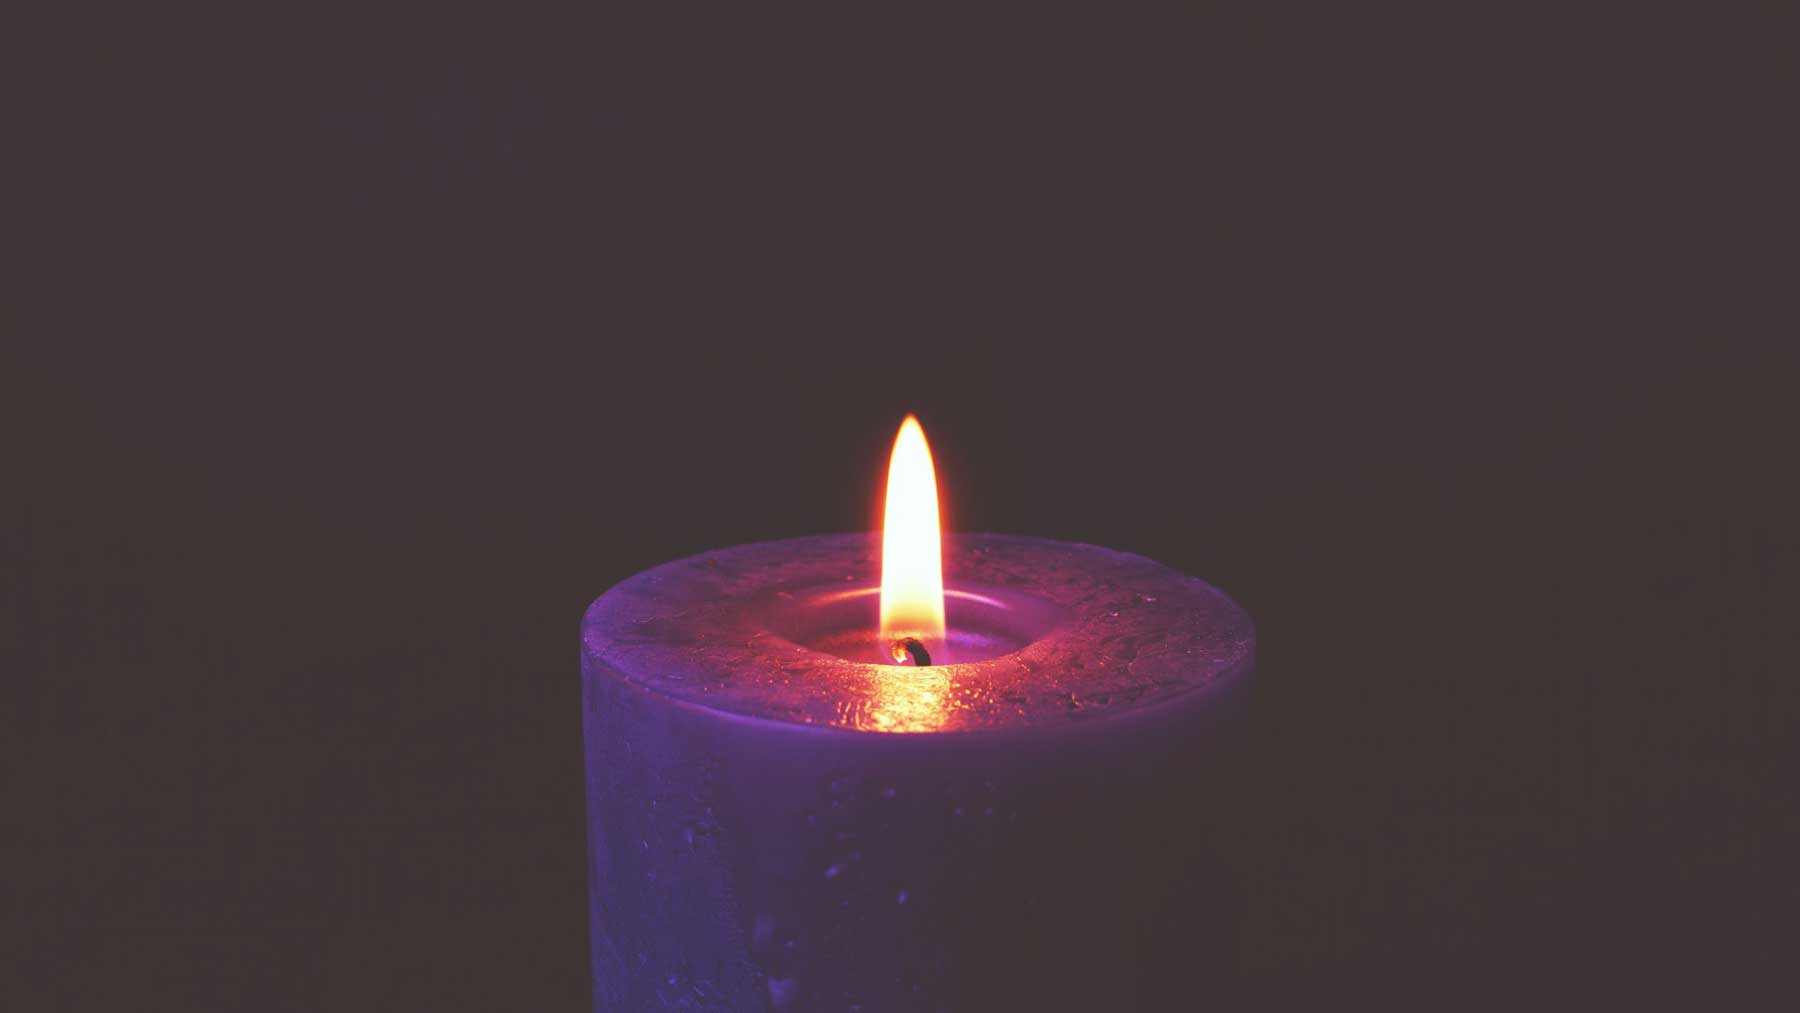 purple candle and flame against a purple background to represent mindfulness and reflection